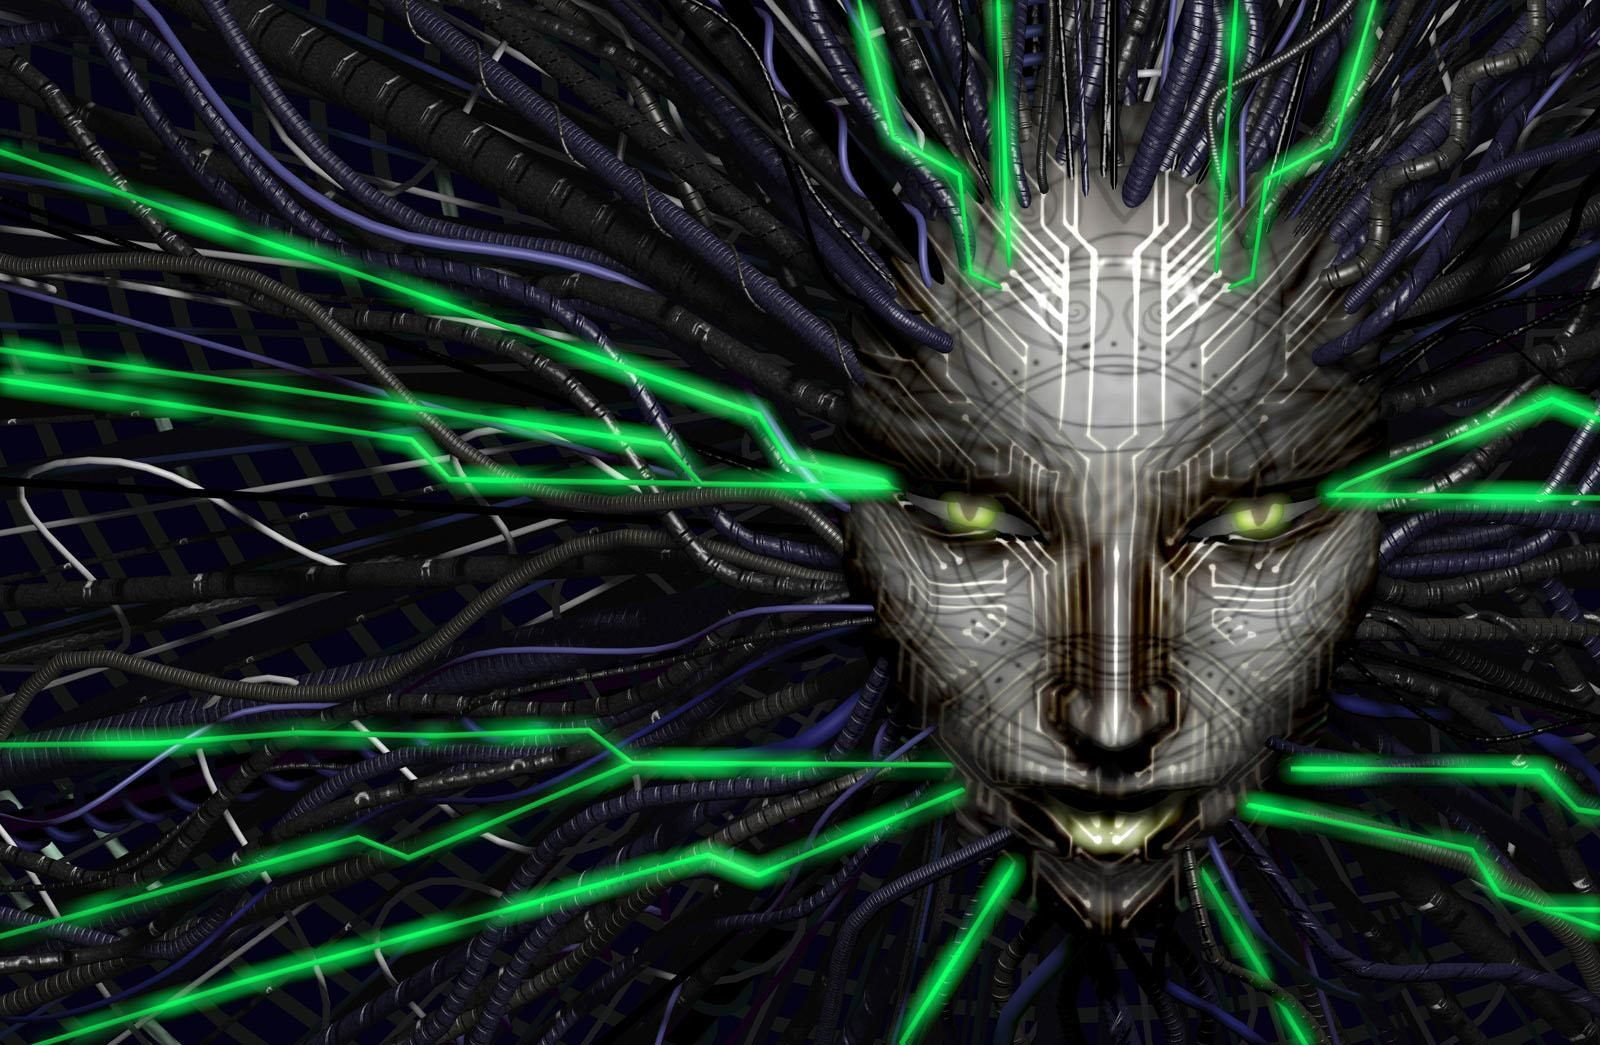 System Shock Remakes Gets a Demo Ahead of its Full Release Later this Summer